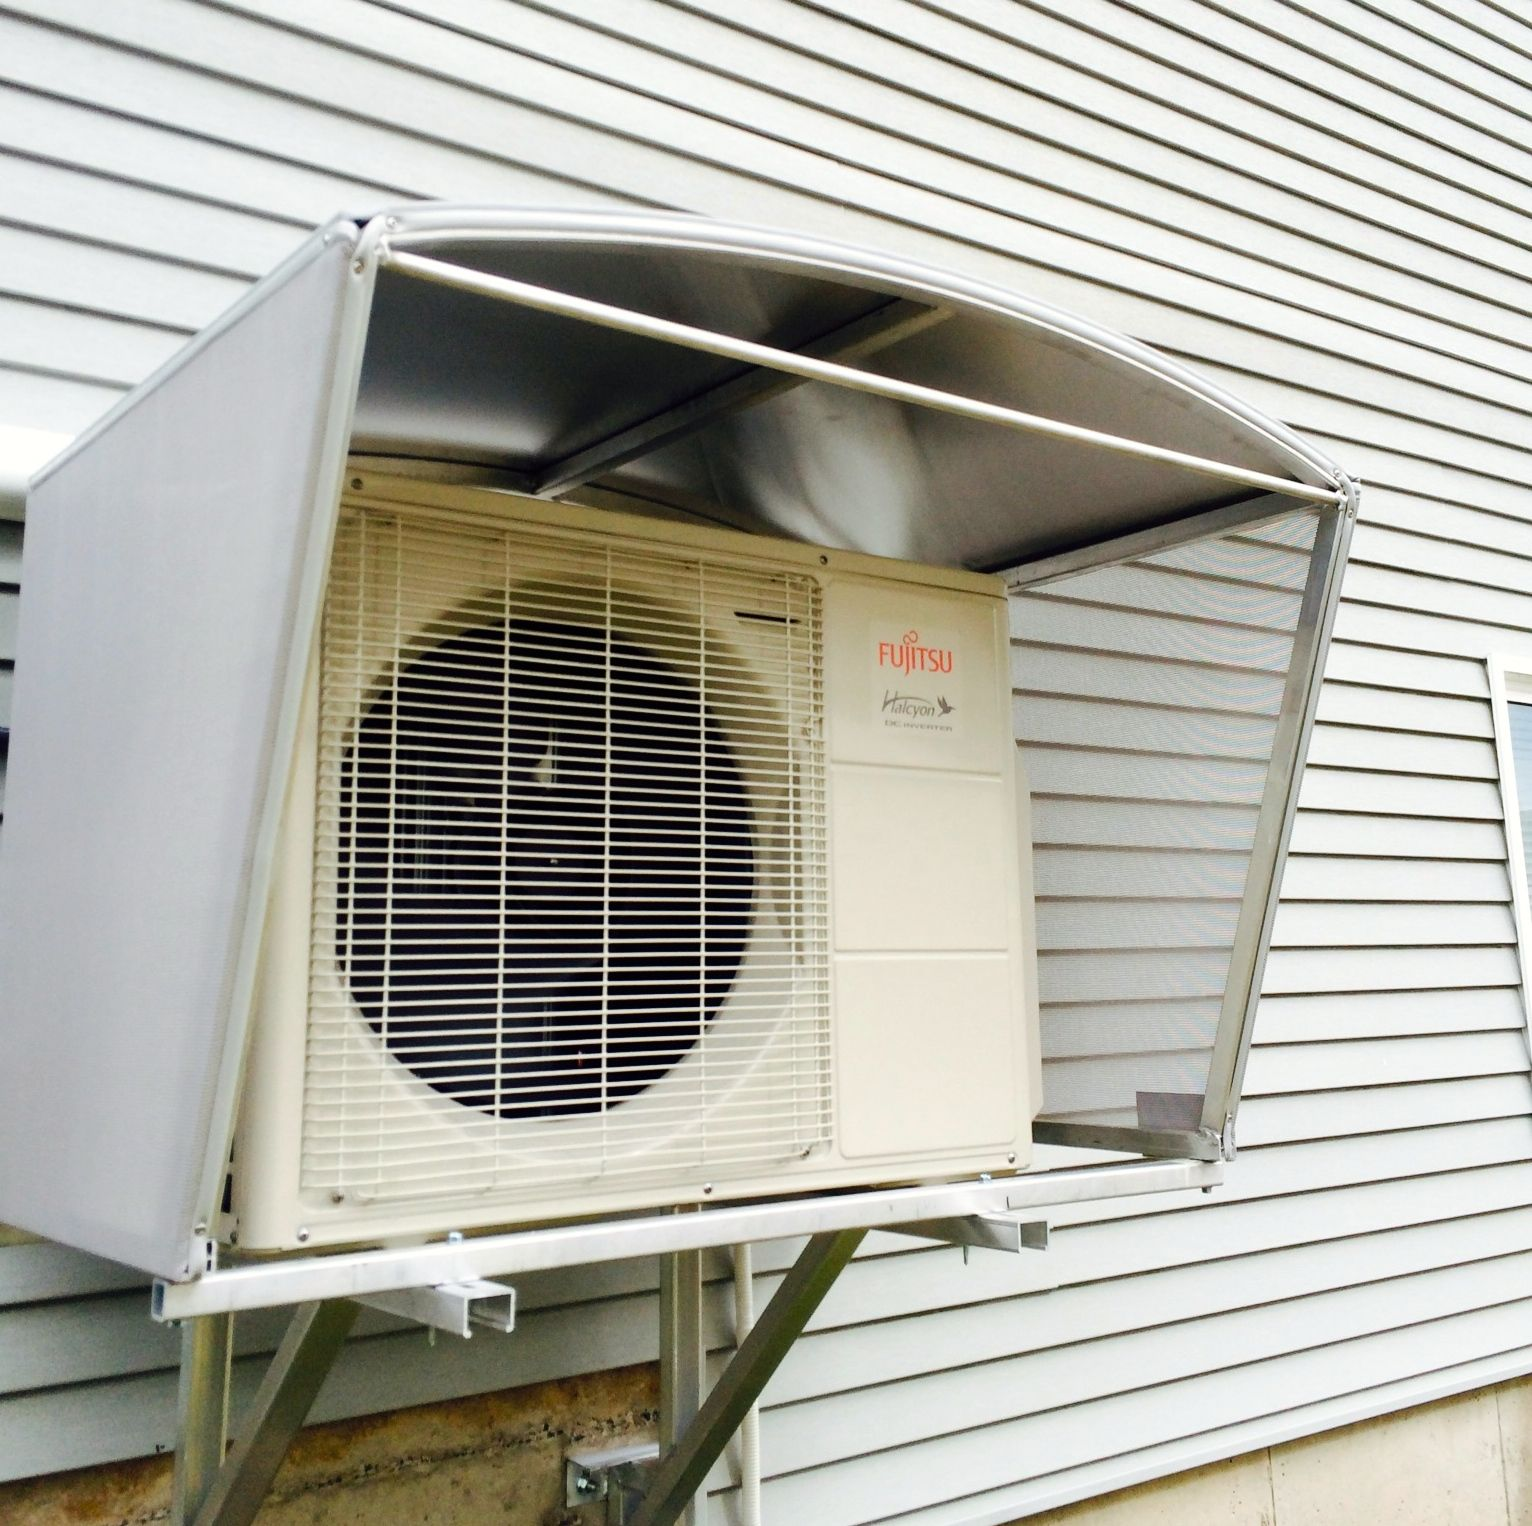 AIRSOURCE HEAT PUMPS These Systems Deliver Economical